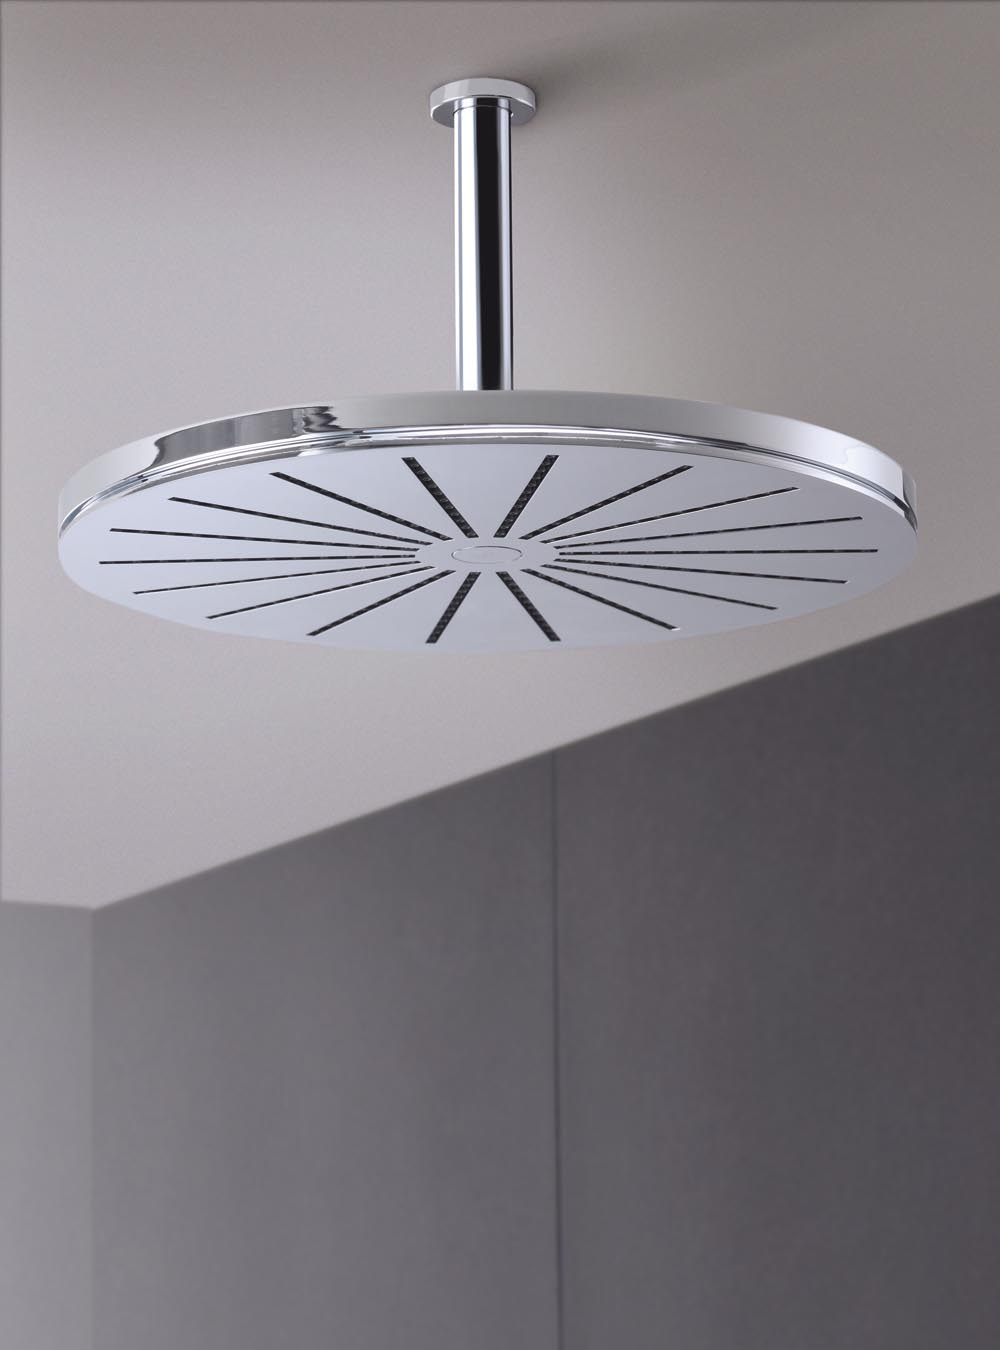 Vola 060a 40 Round Ceiling Mount Showerhead With Arm And